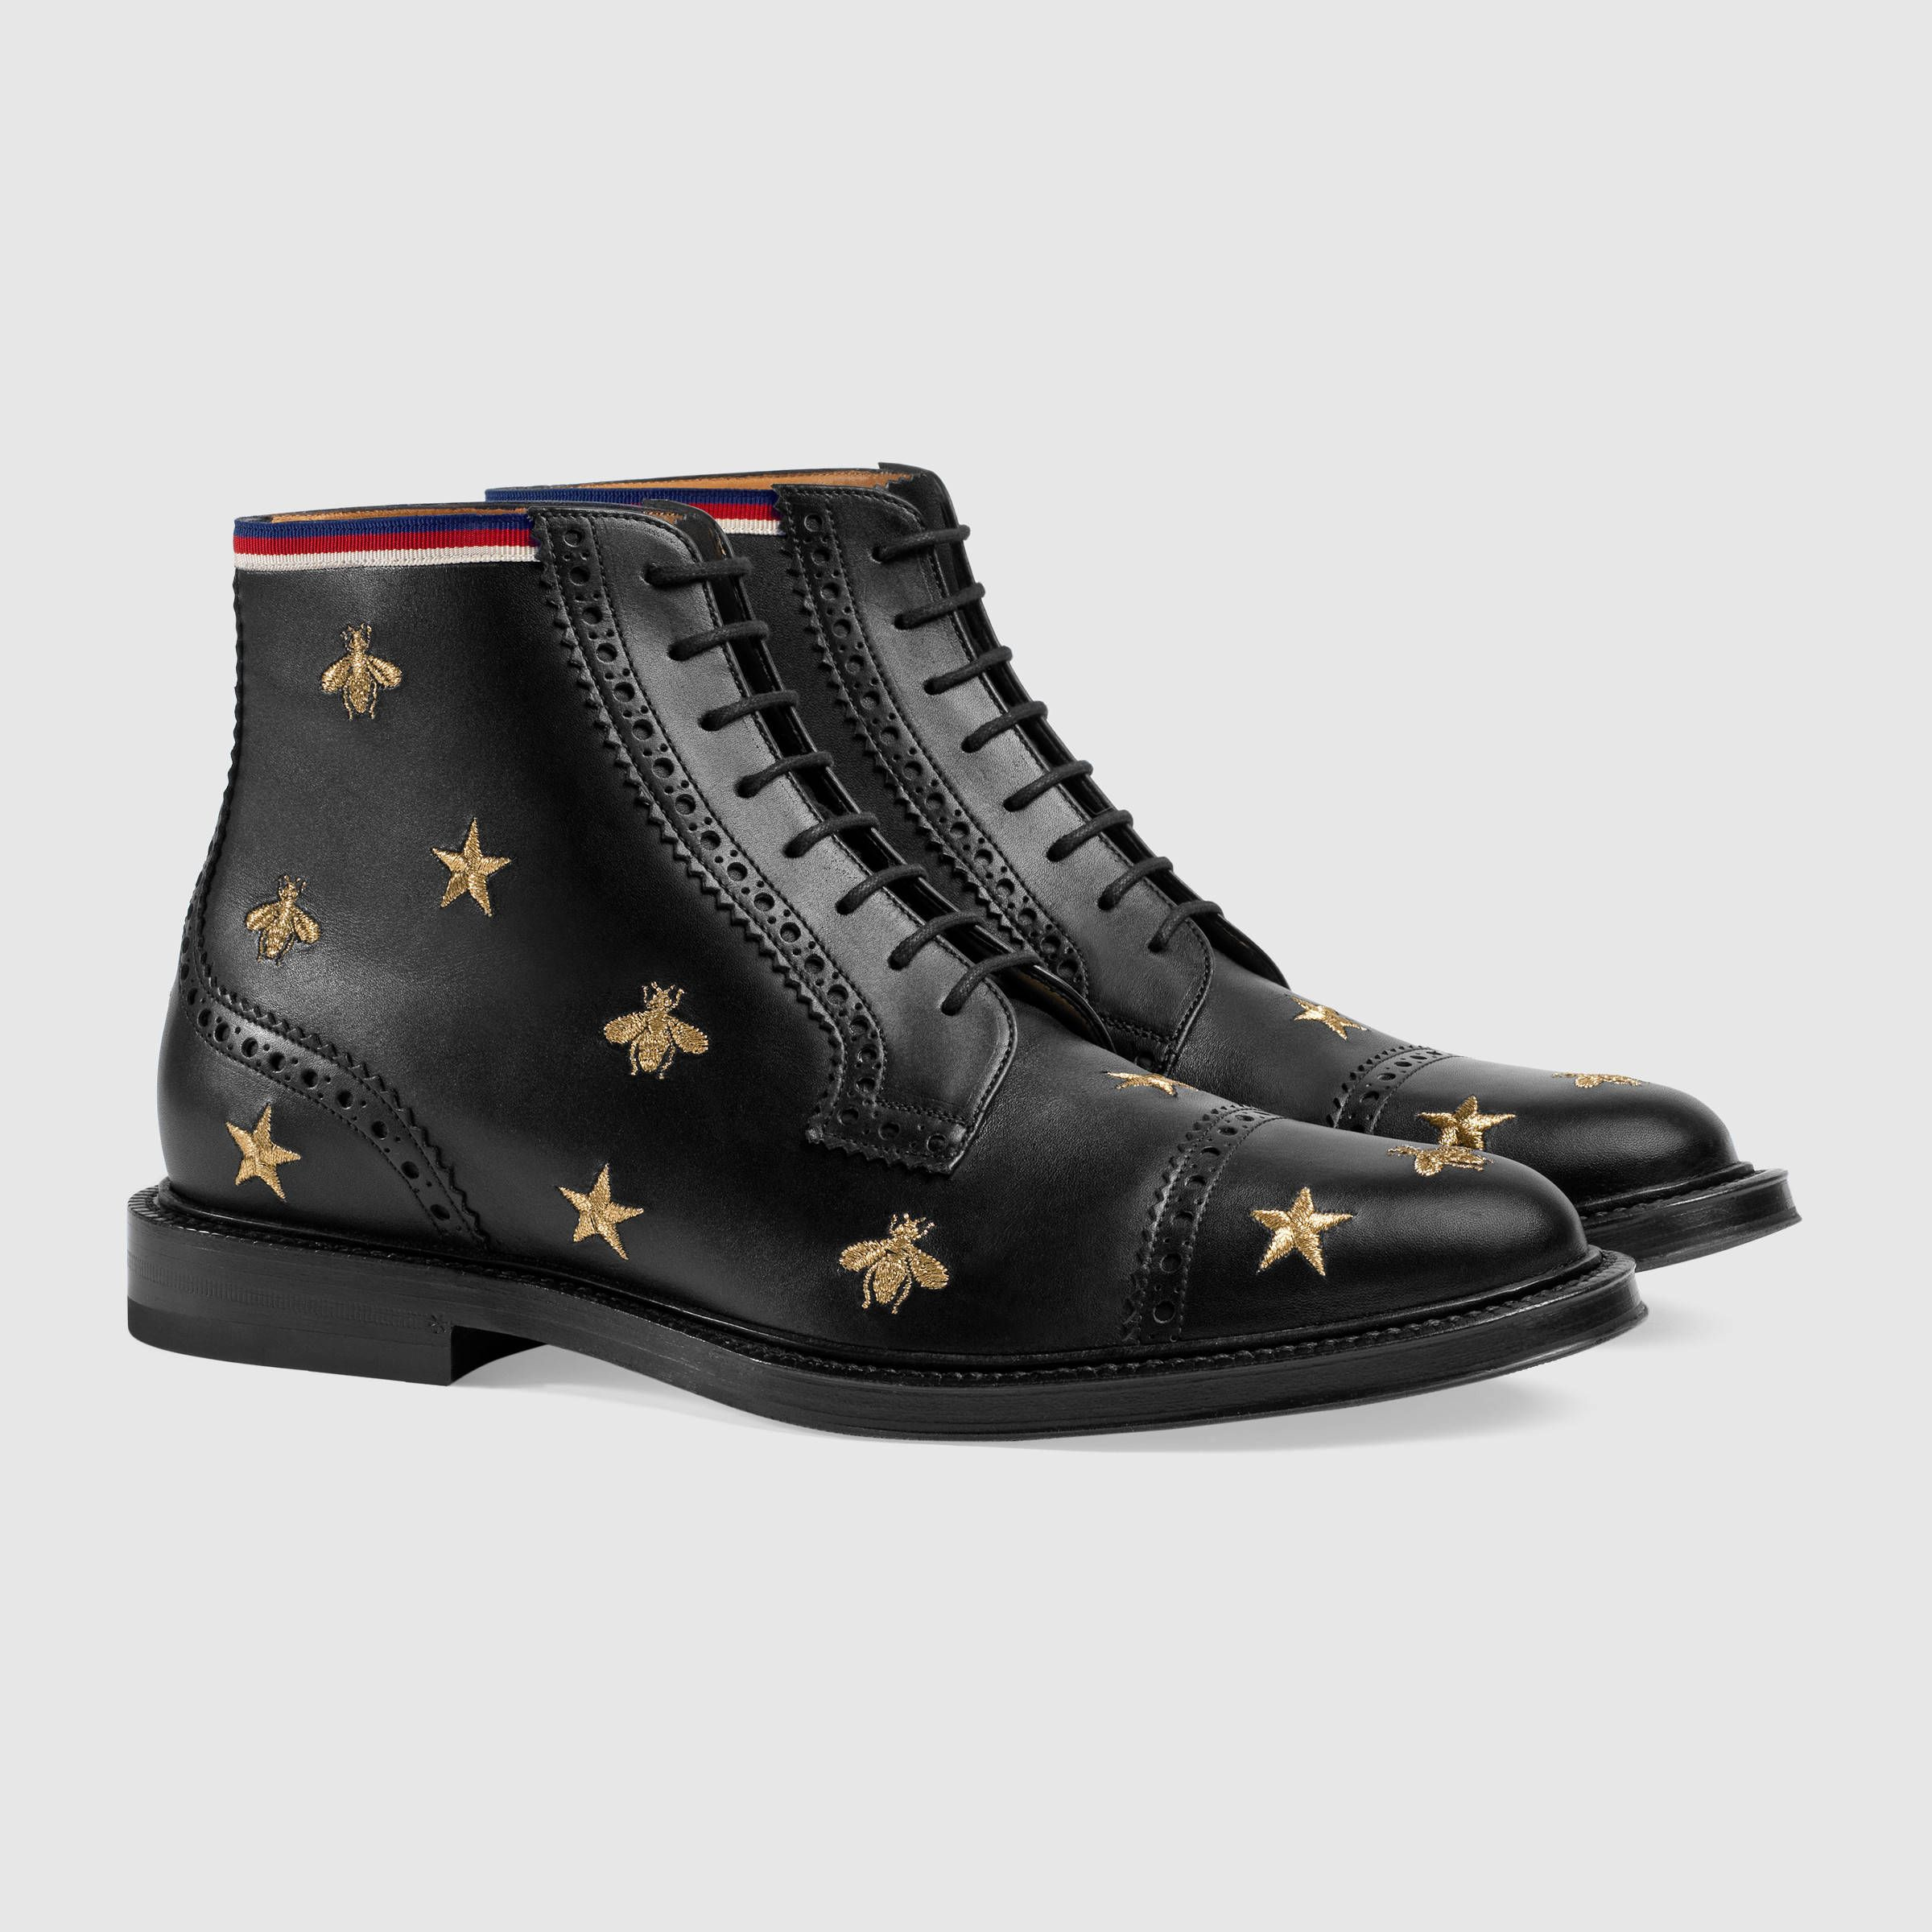 77dd0ad337f Gucci Leather embroidered brogue boot Detail 2 | Brogue, Derby ...